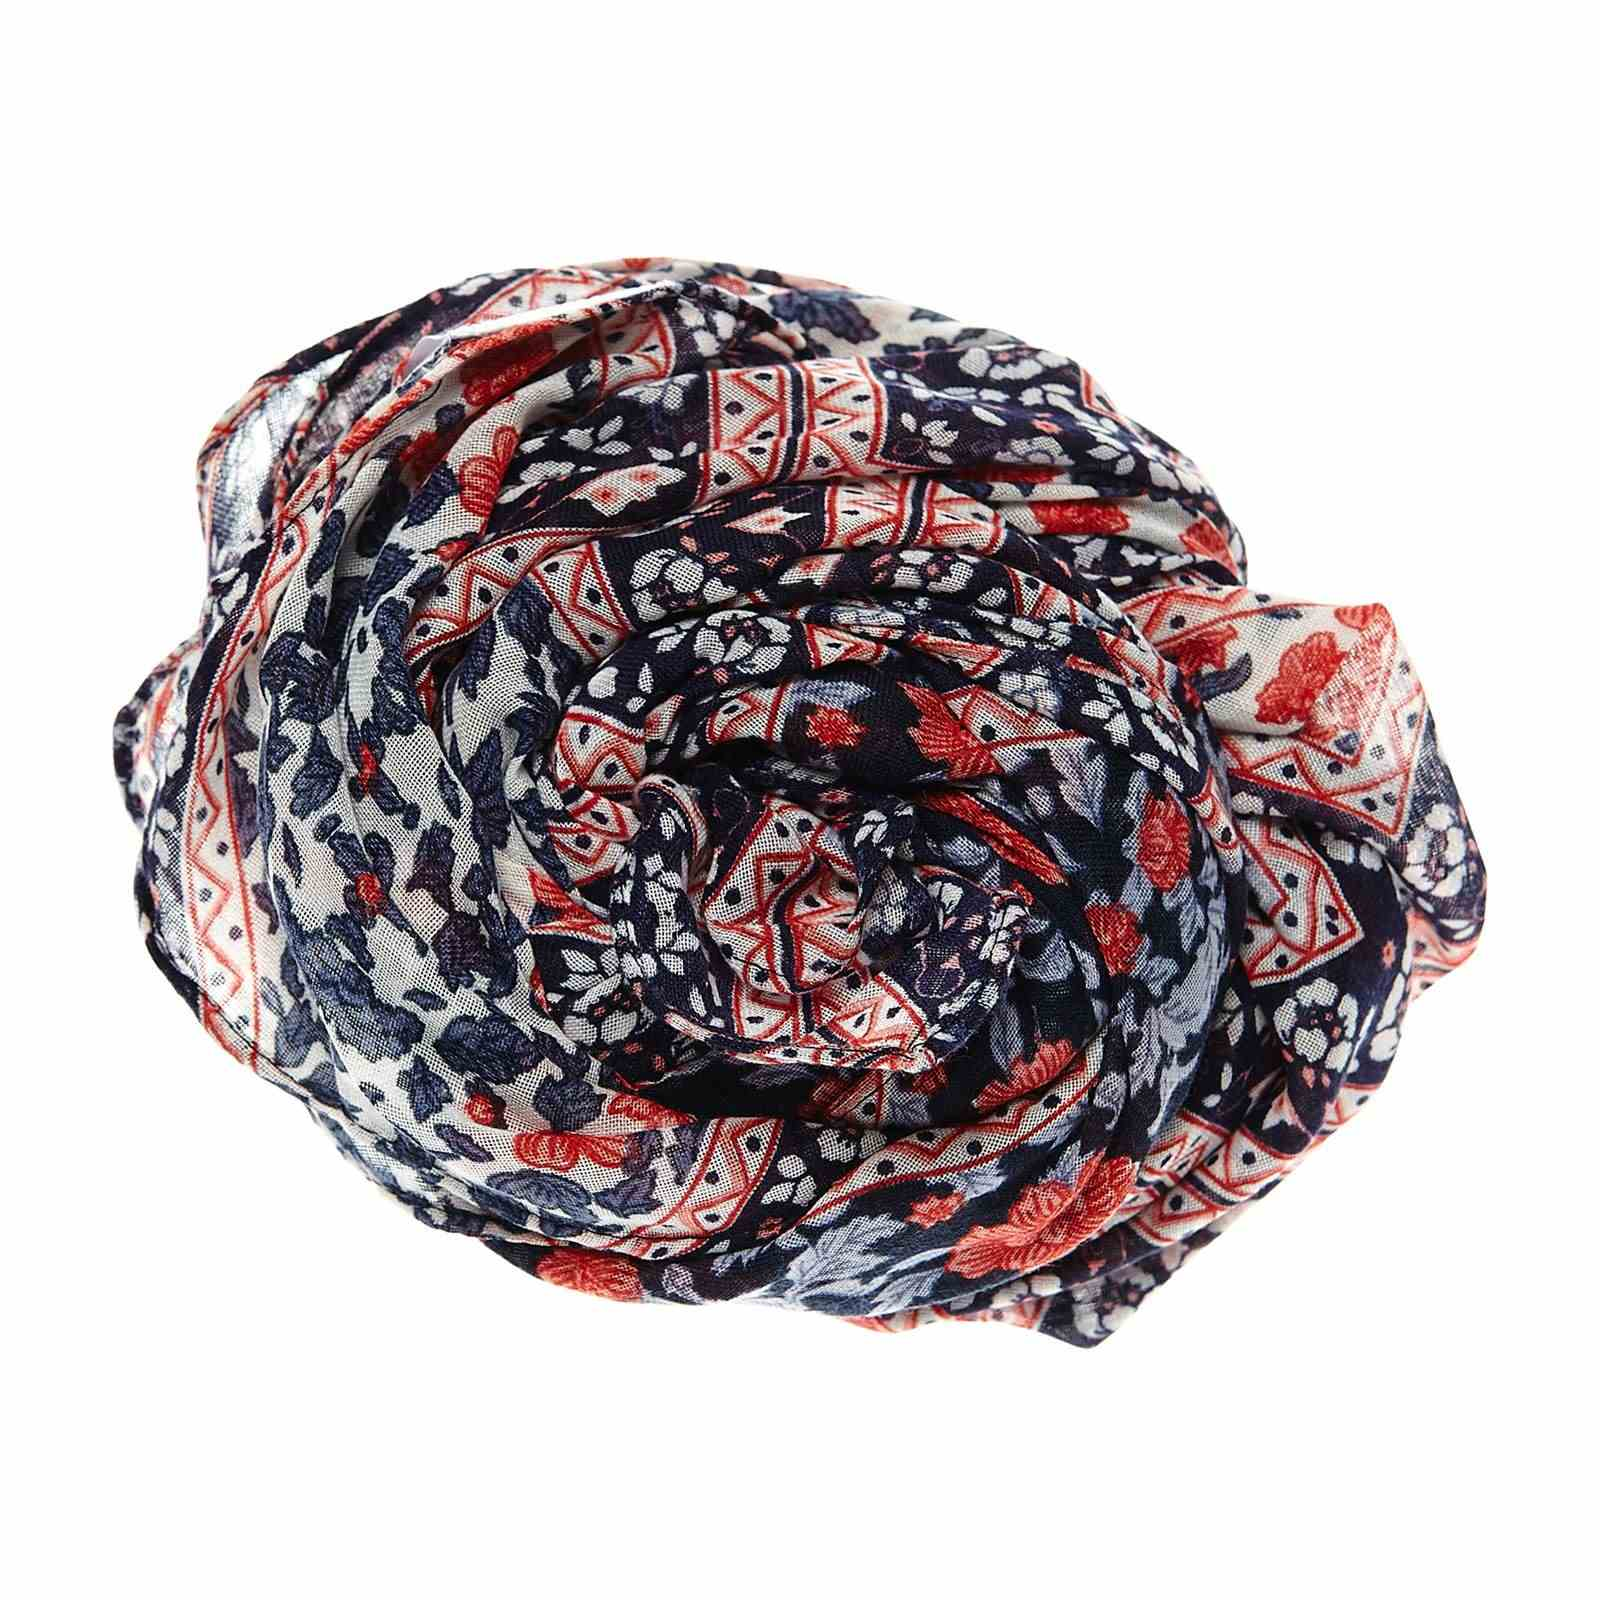 Pepe Jeans London maca - Foulard - multicolore